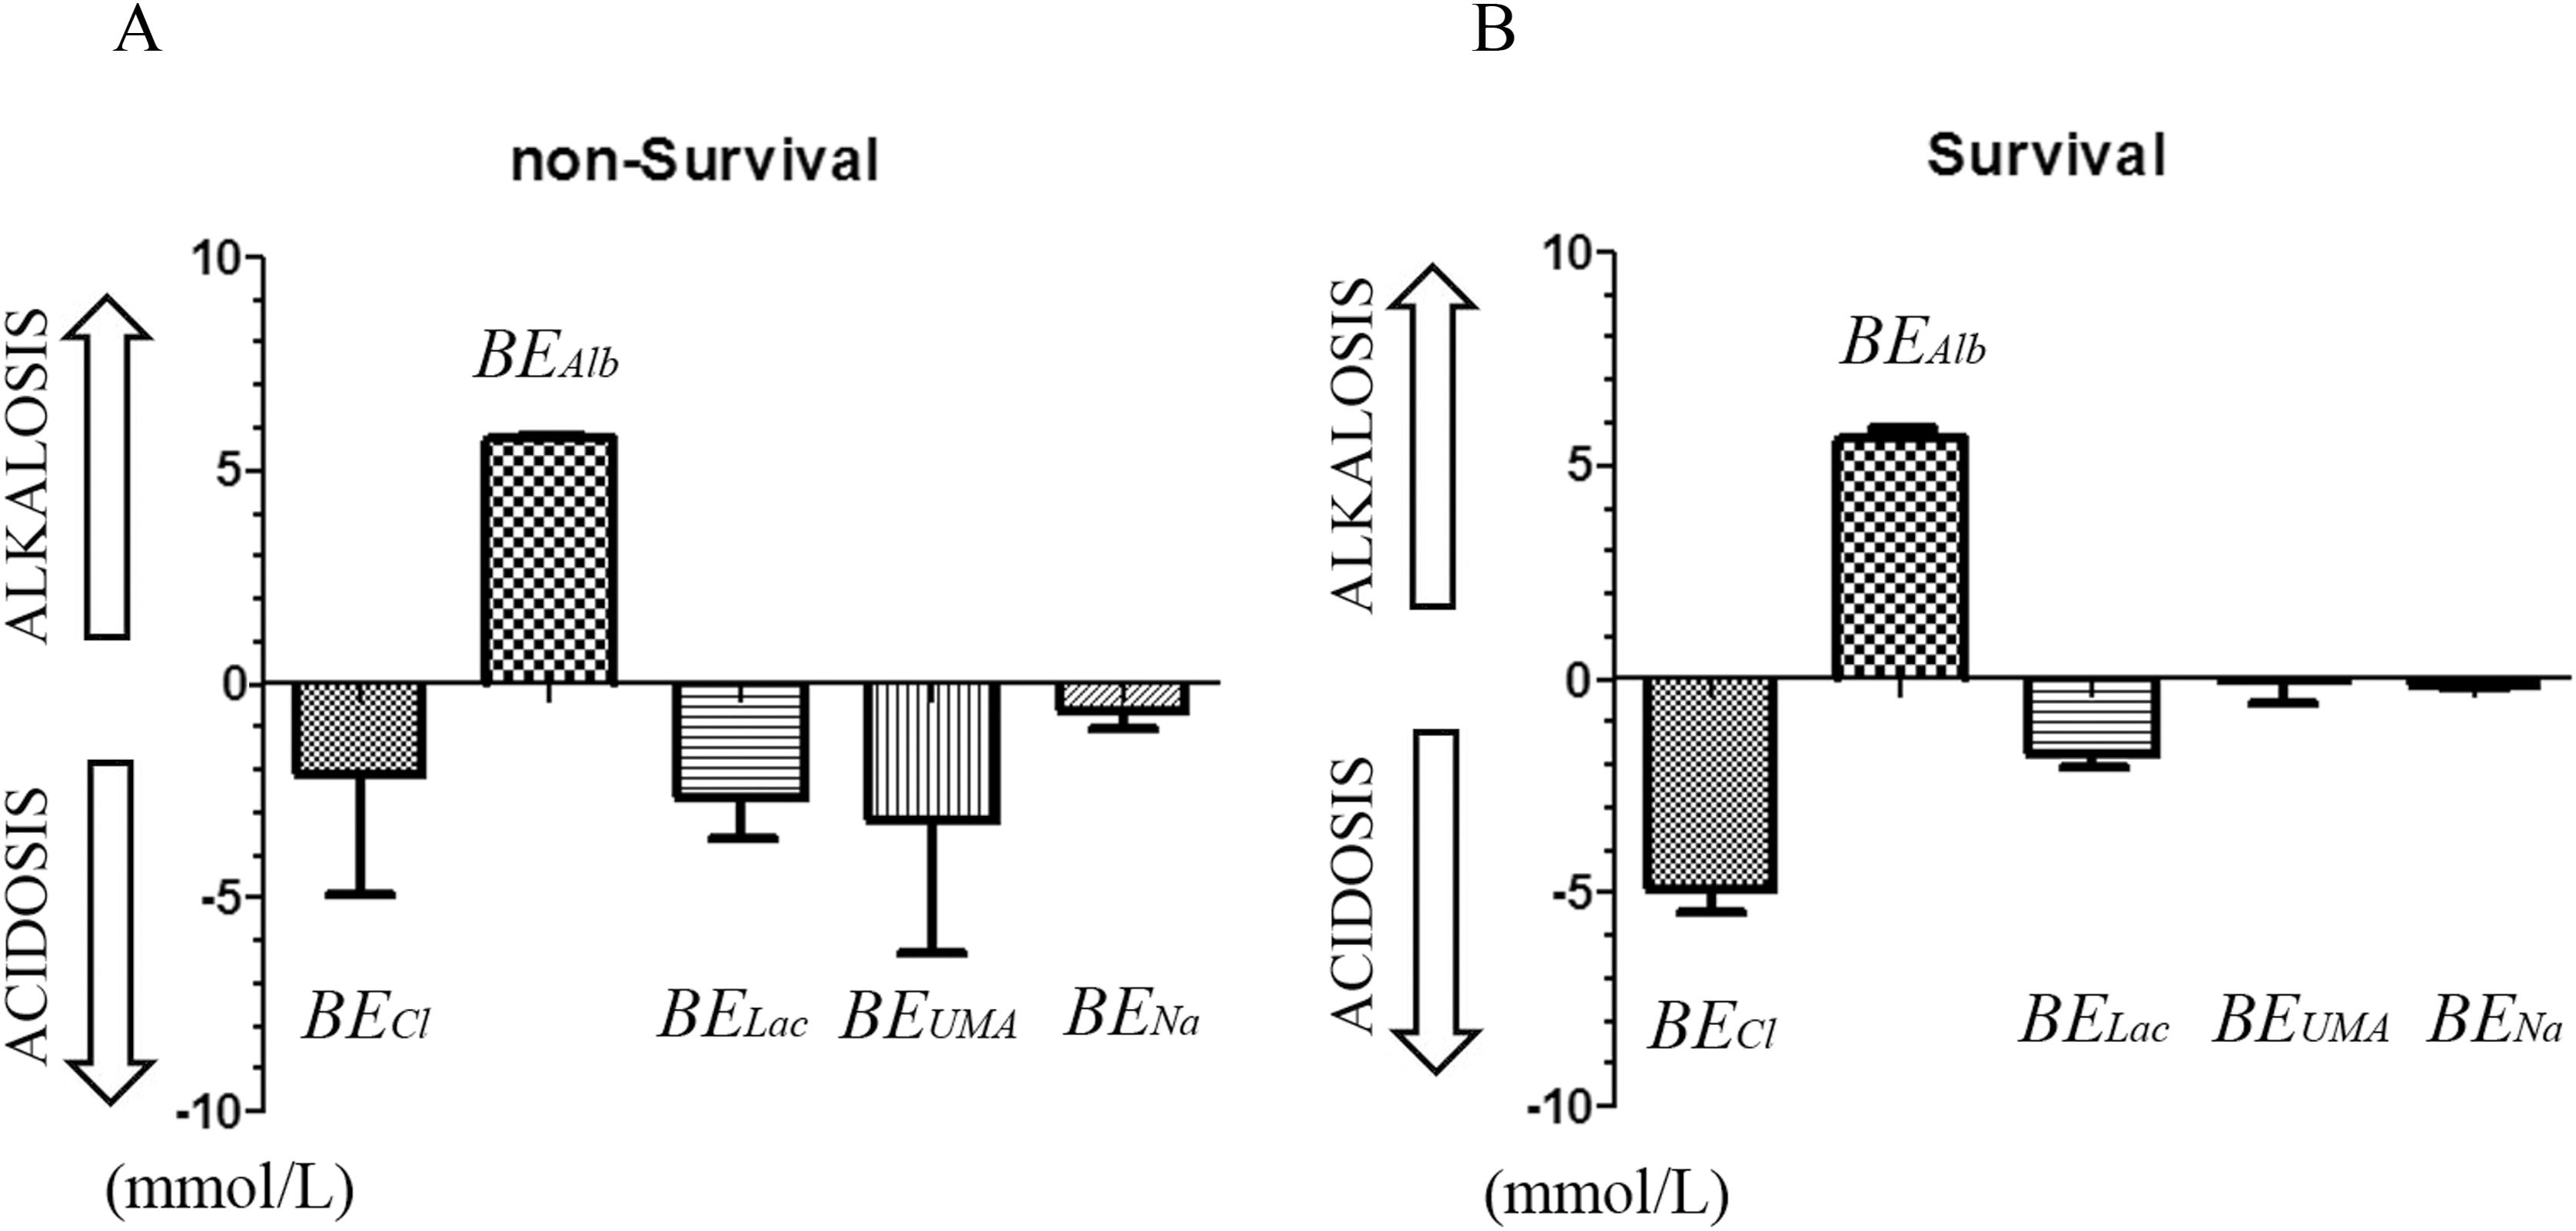 Disequilibrium of metabolic acid-base disorders in CICPs with AKI between non-survivors and survivors.